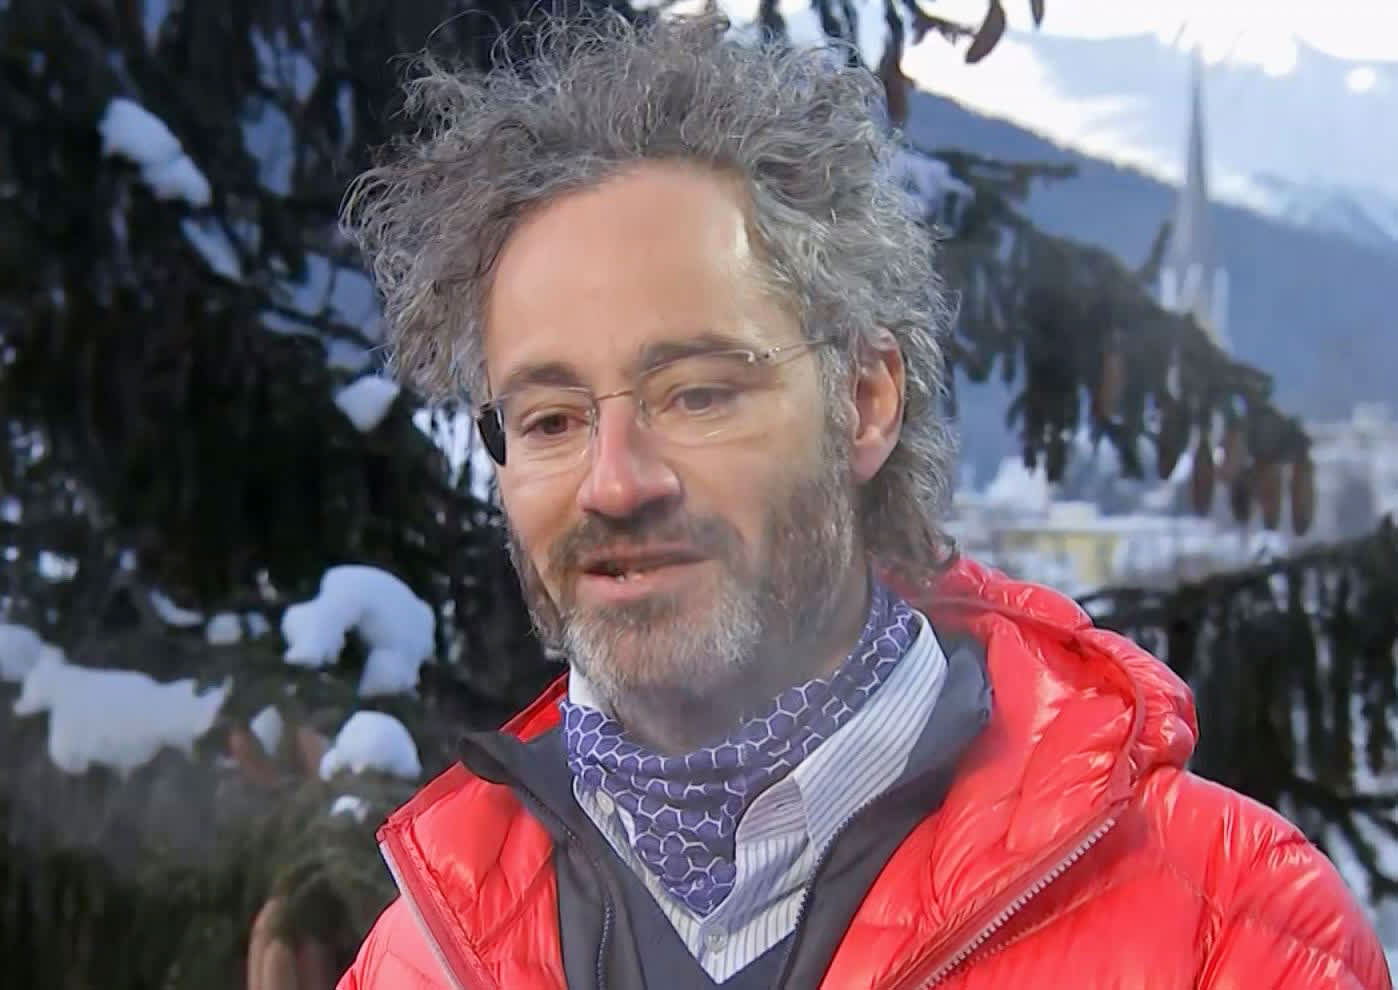 Alex Karp, CEO of Palantir, speaking at the 2019 WEF in Davos, Switzerland on Jan. 23rd, 2019.